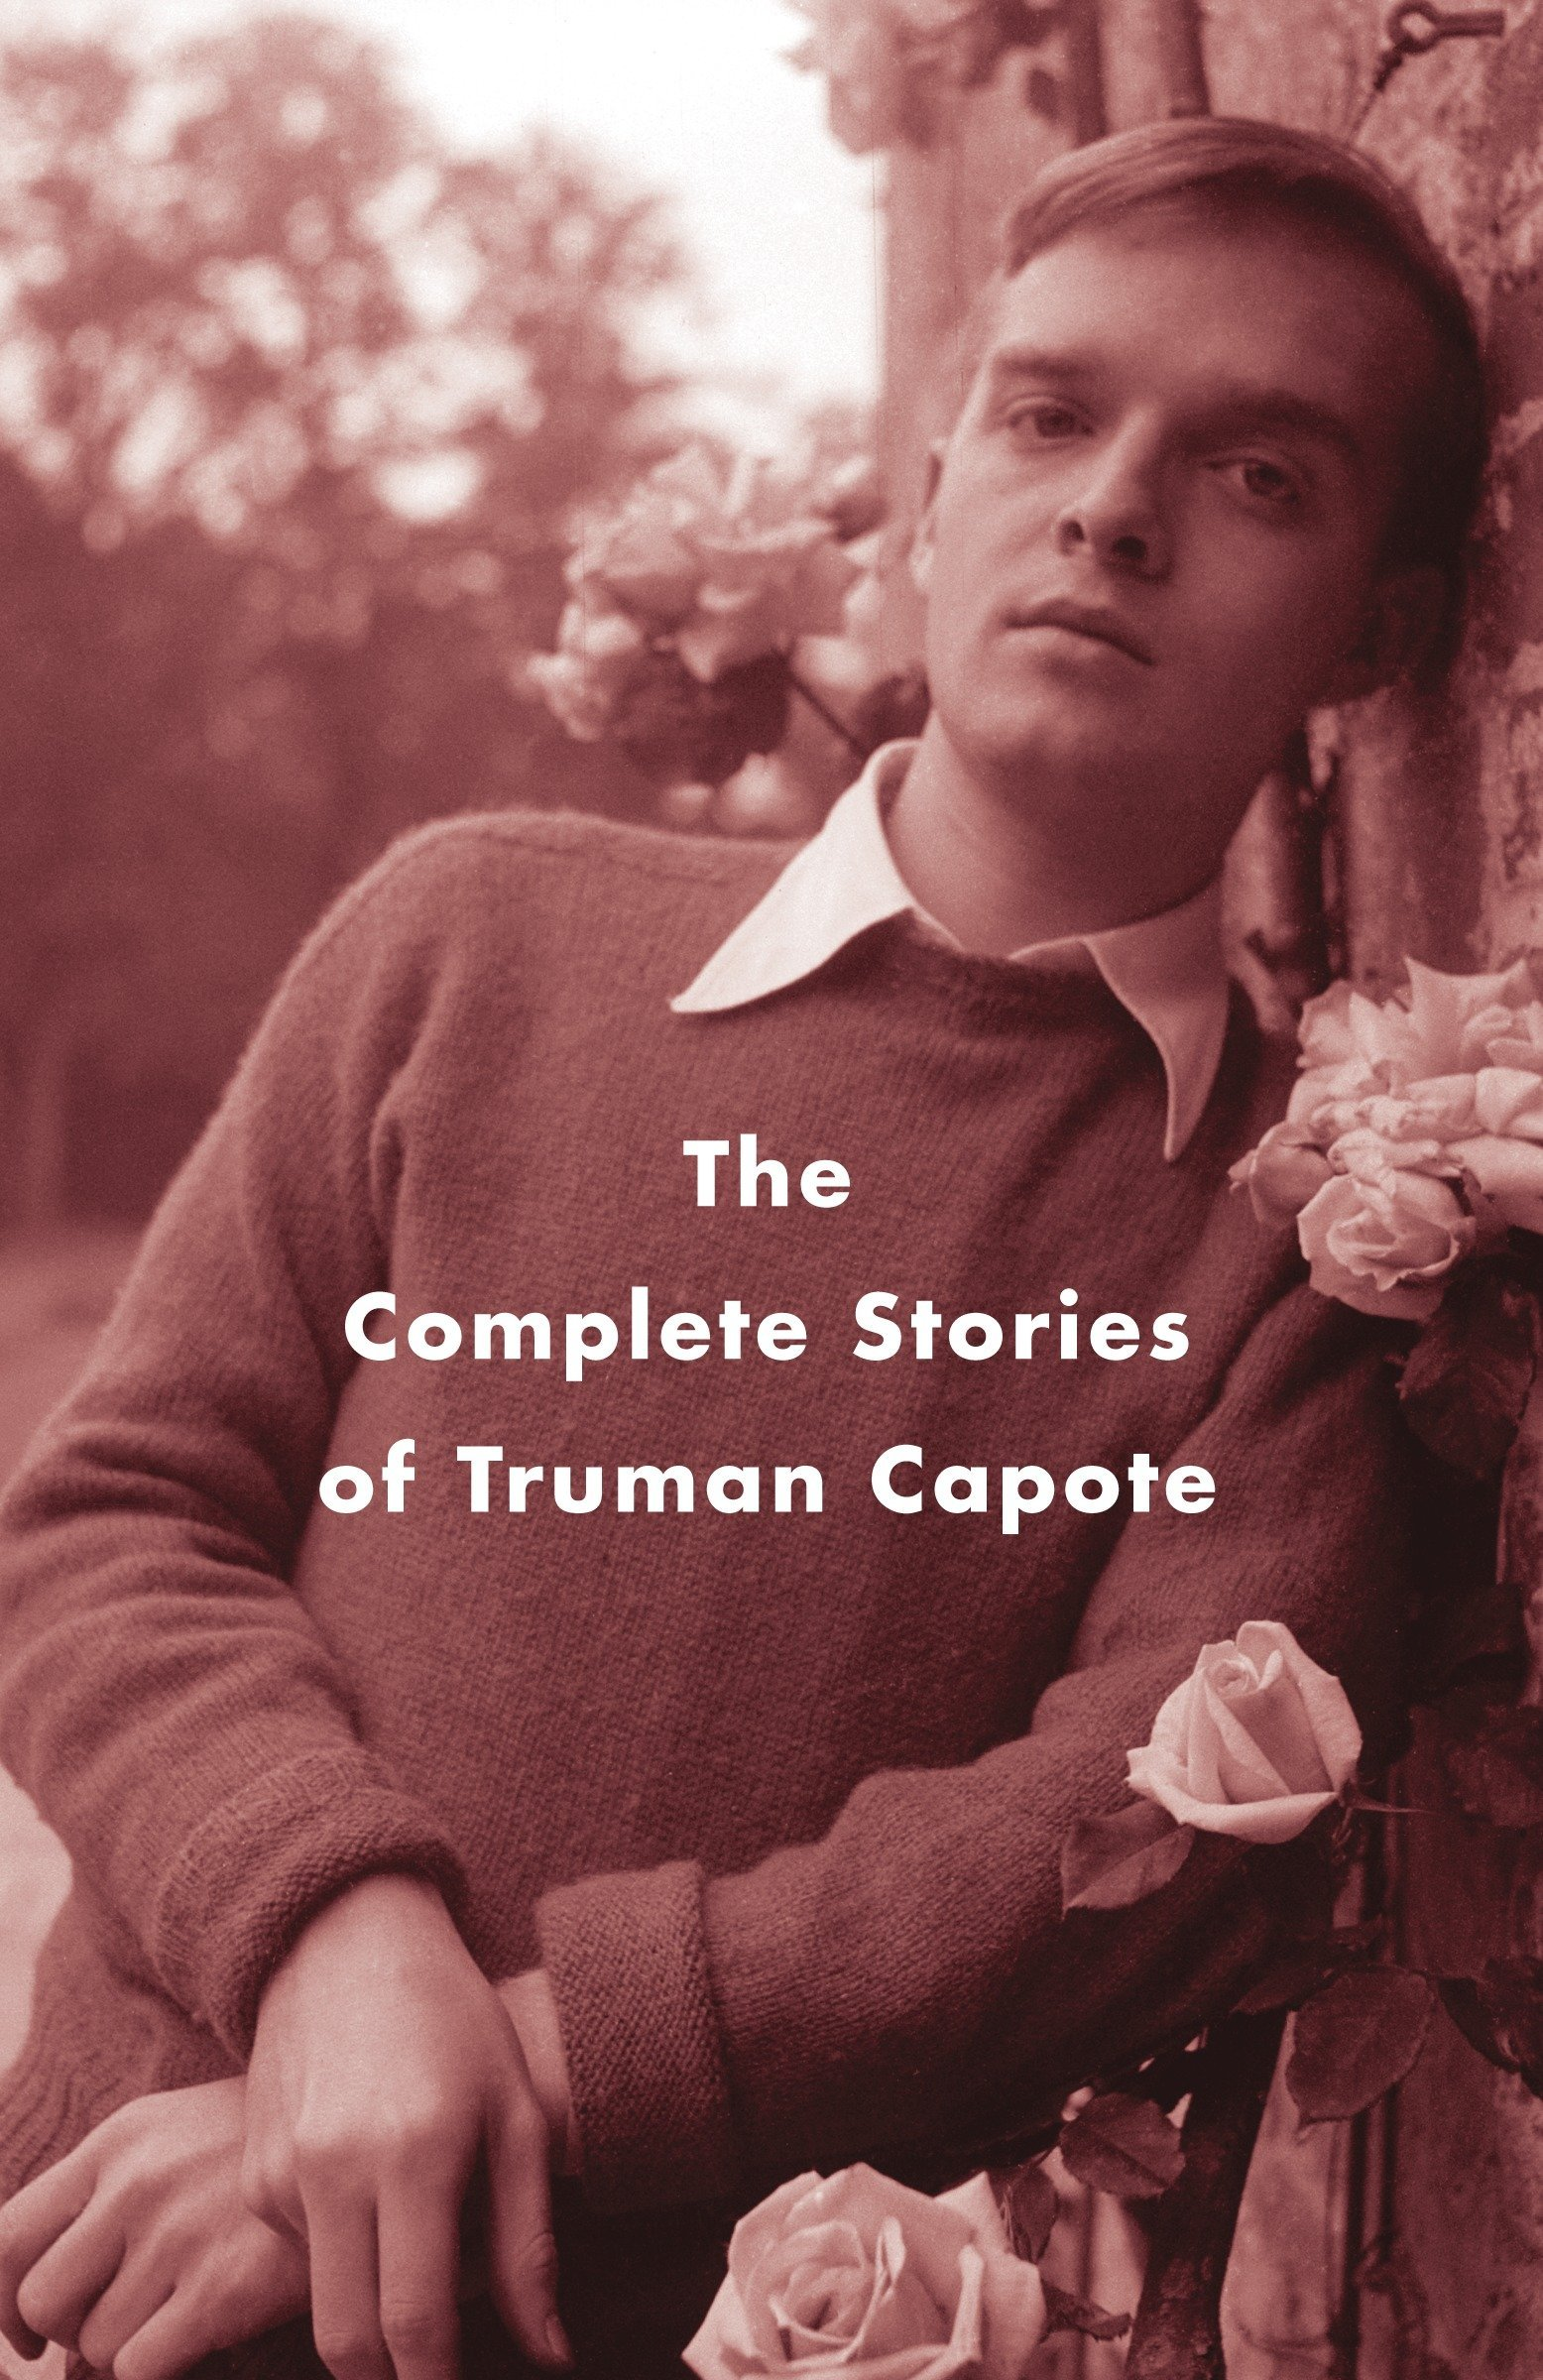 The Complete Stories of Truman Capote: Capote, Truman, Price, Reynolds:  9781400096916: Amazon.com: Books